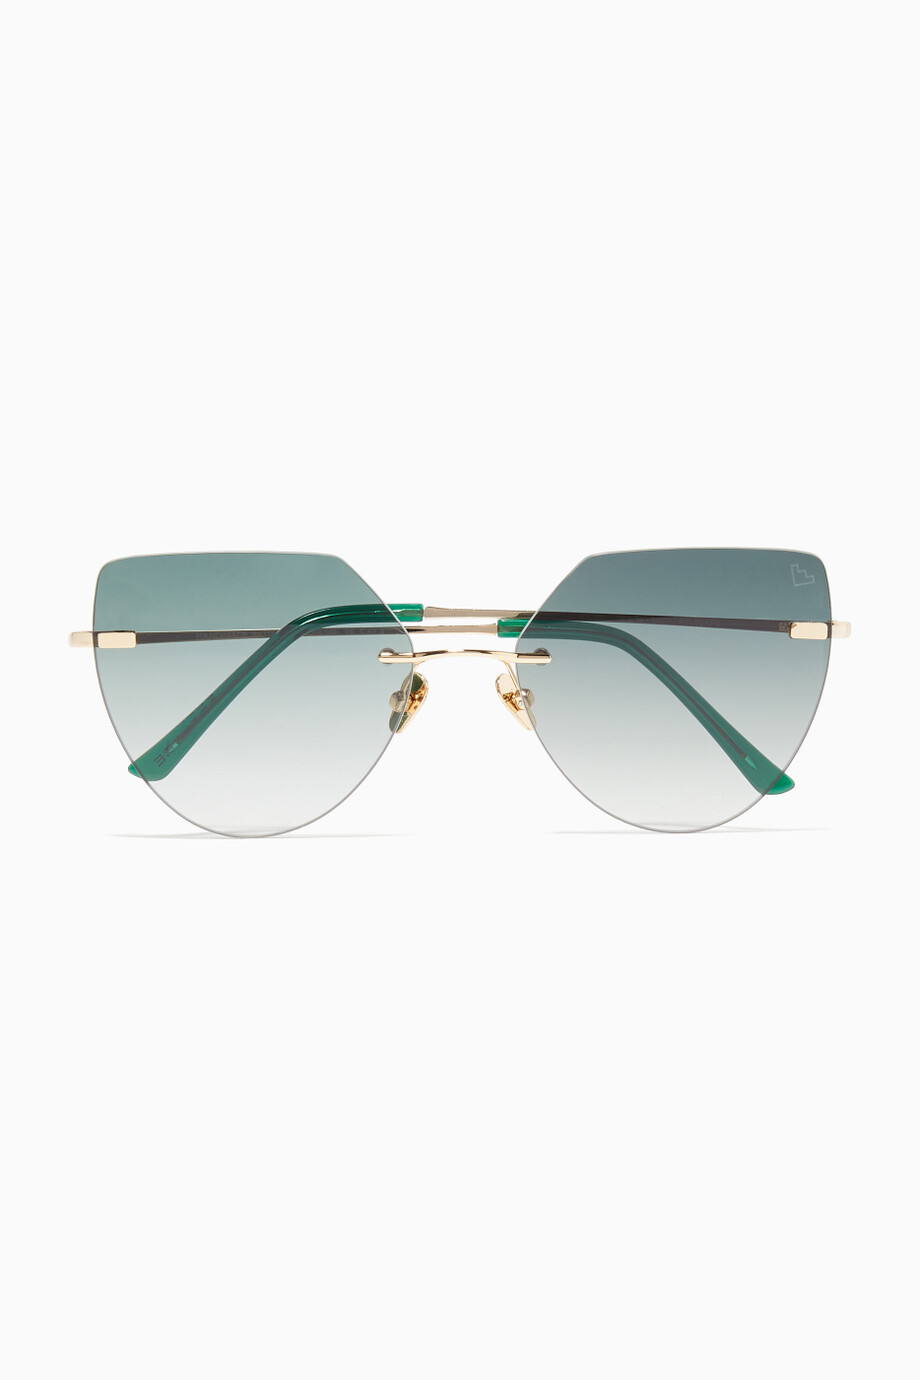 2c6b3e675 Shop Spektre Green Miller Gold Sunglasses for Women | Ounass